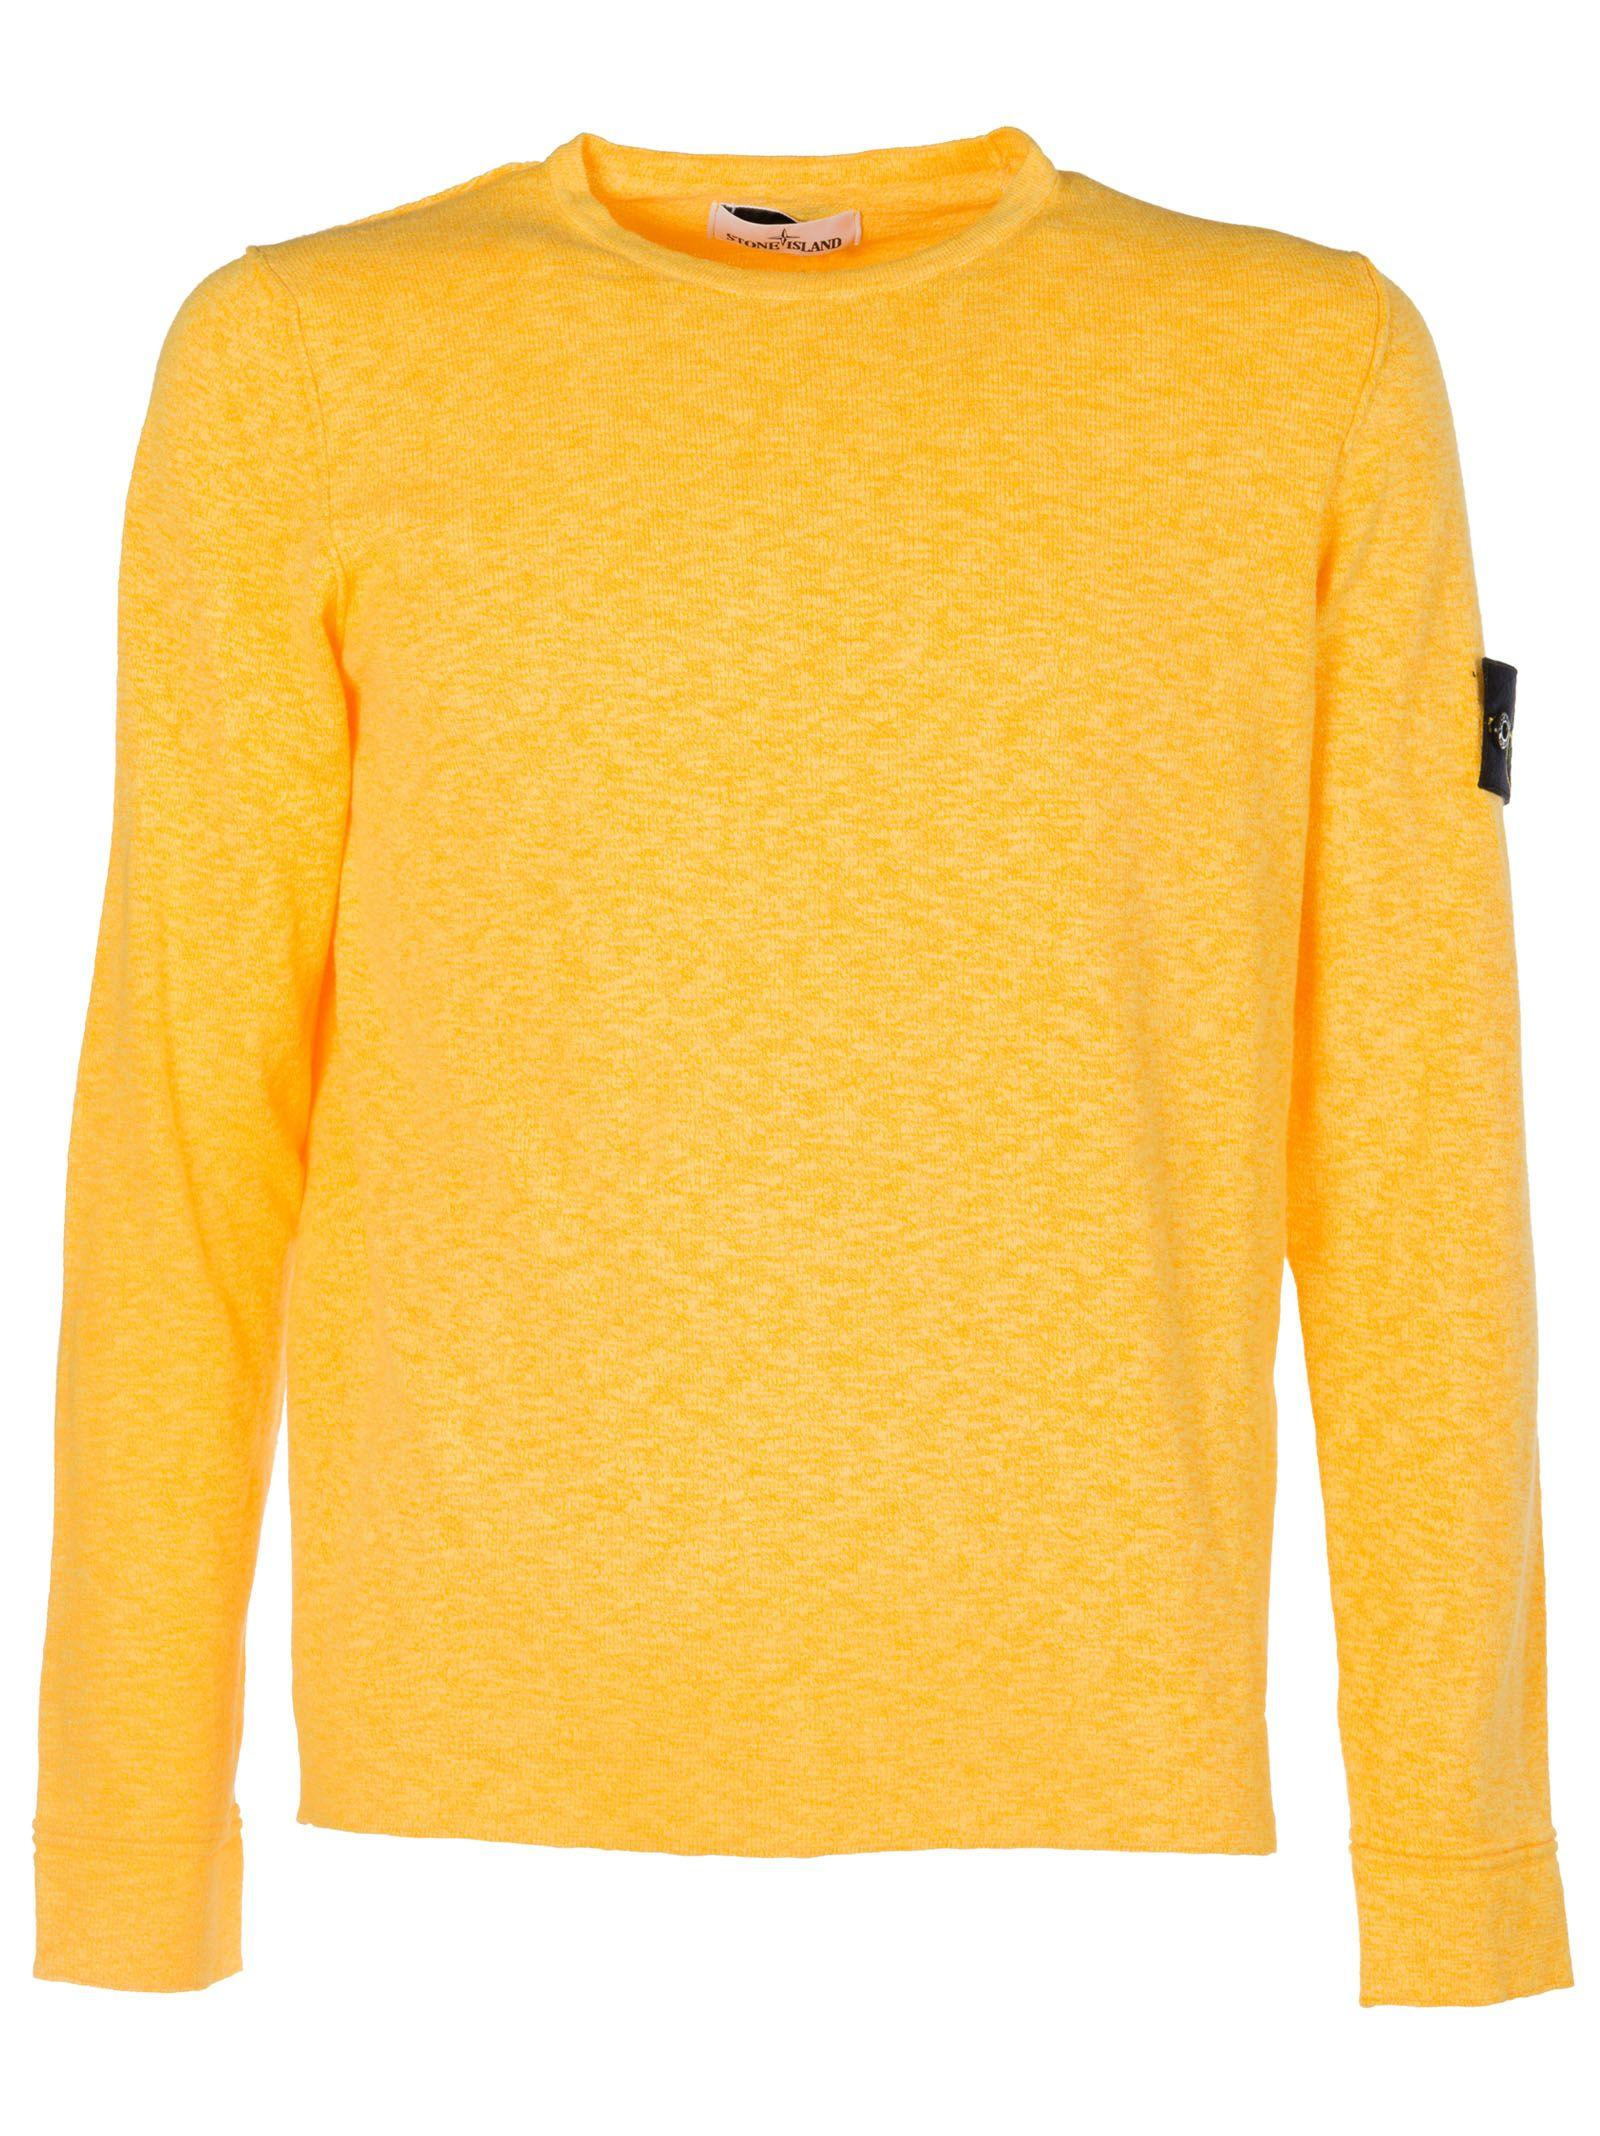 Stone Island Classic Sweatshirt In Yellow & Orange